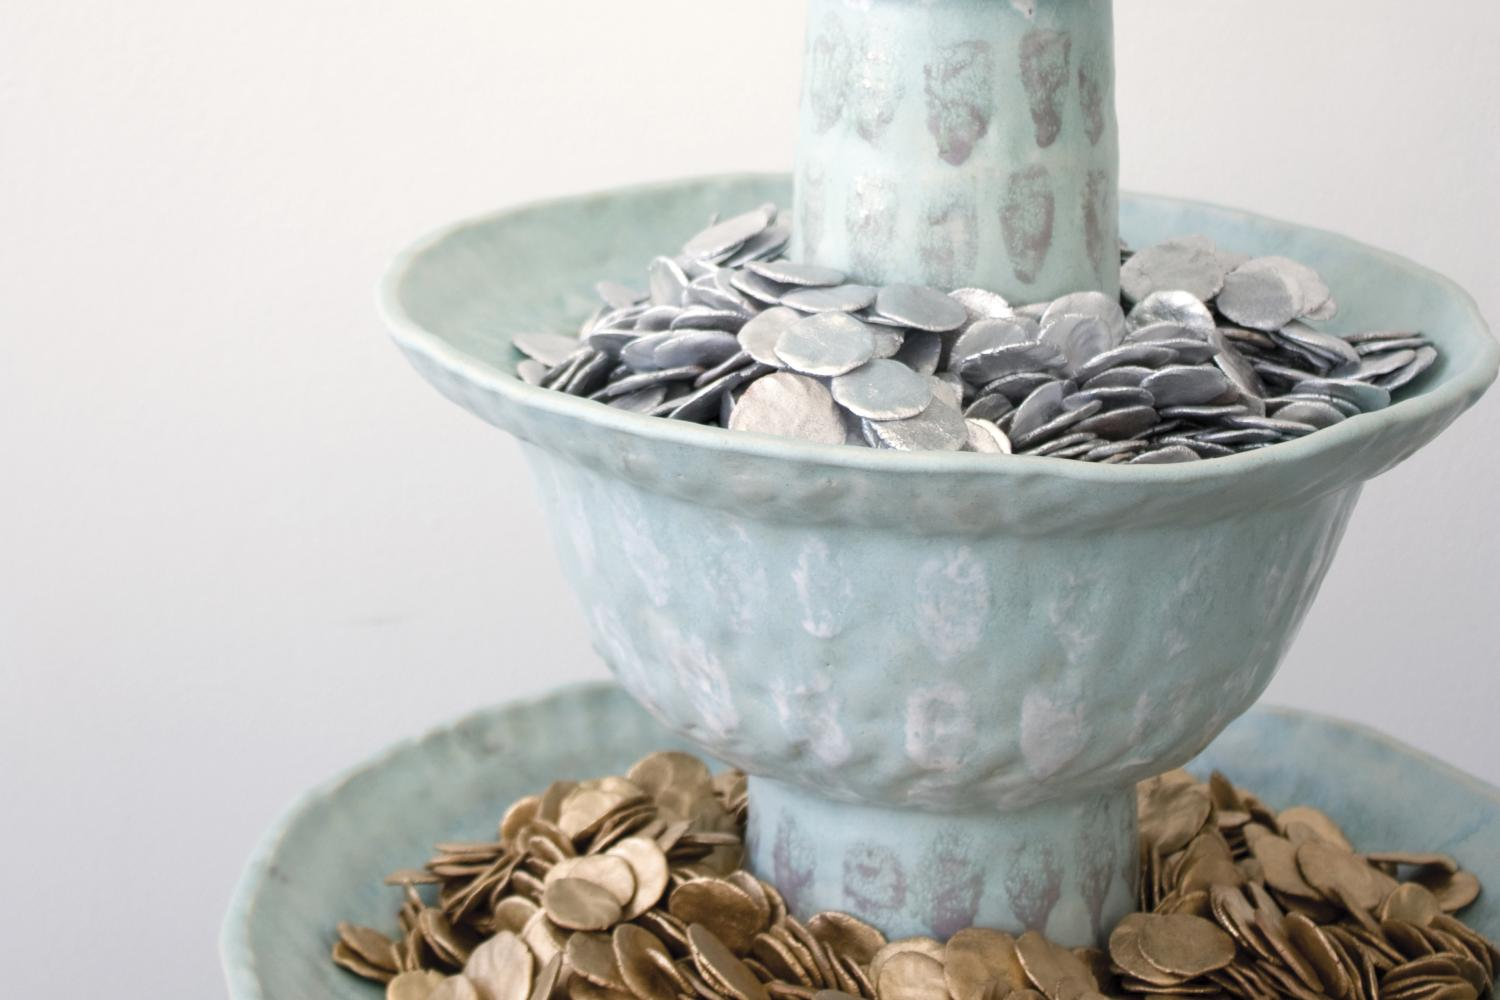 Ceramic fountain filled with ceramic coins.